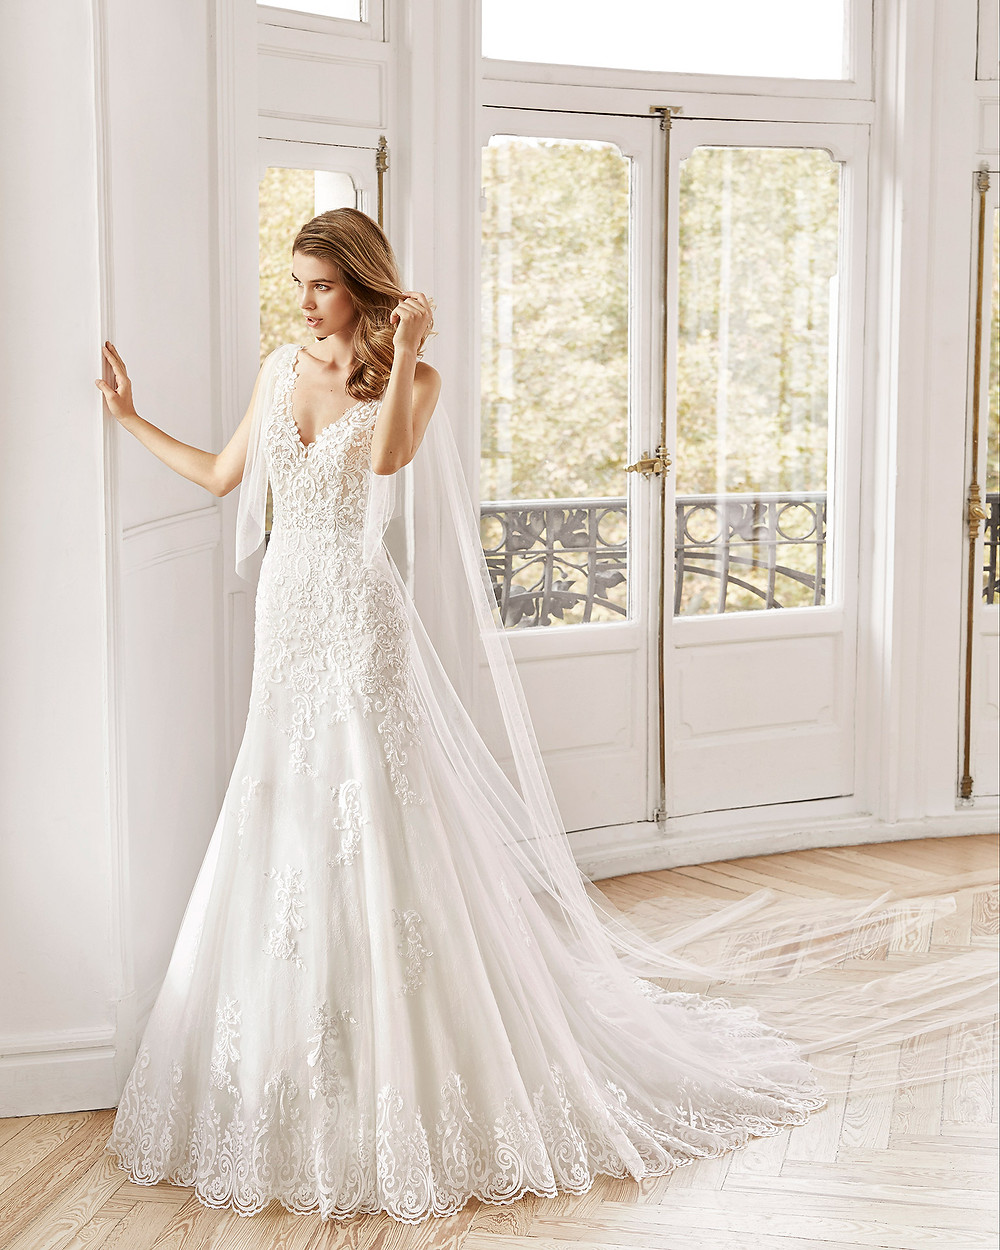 An Aire Barcelona 2020 lace A-line wedding dress with a v neckline